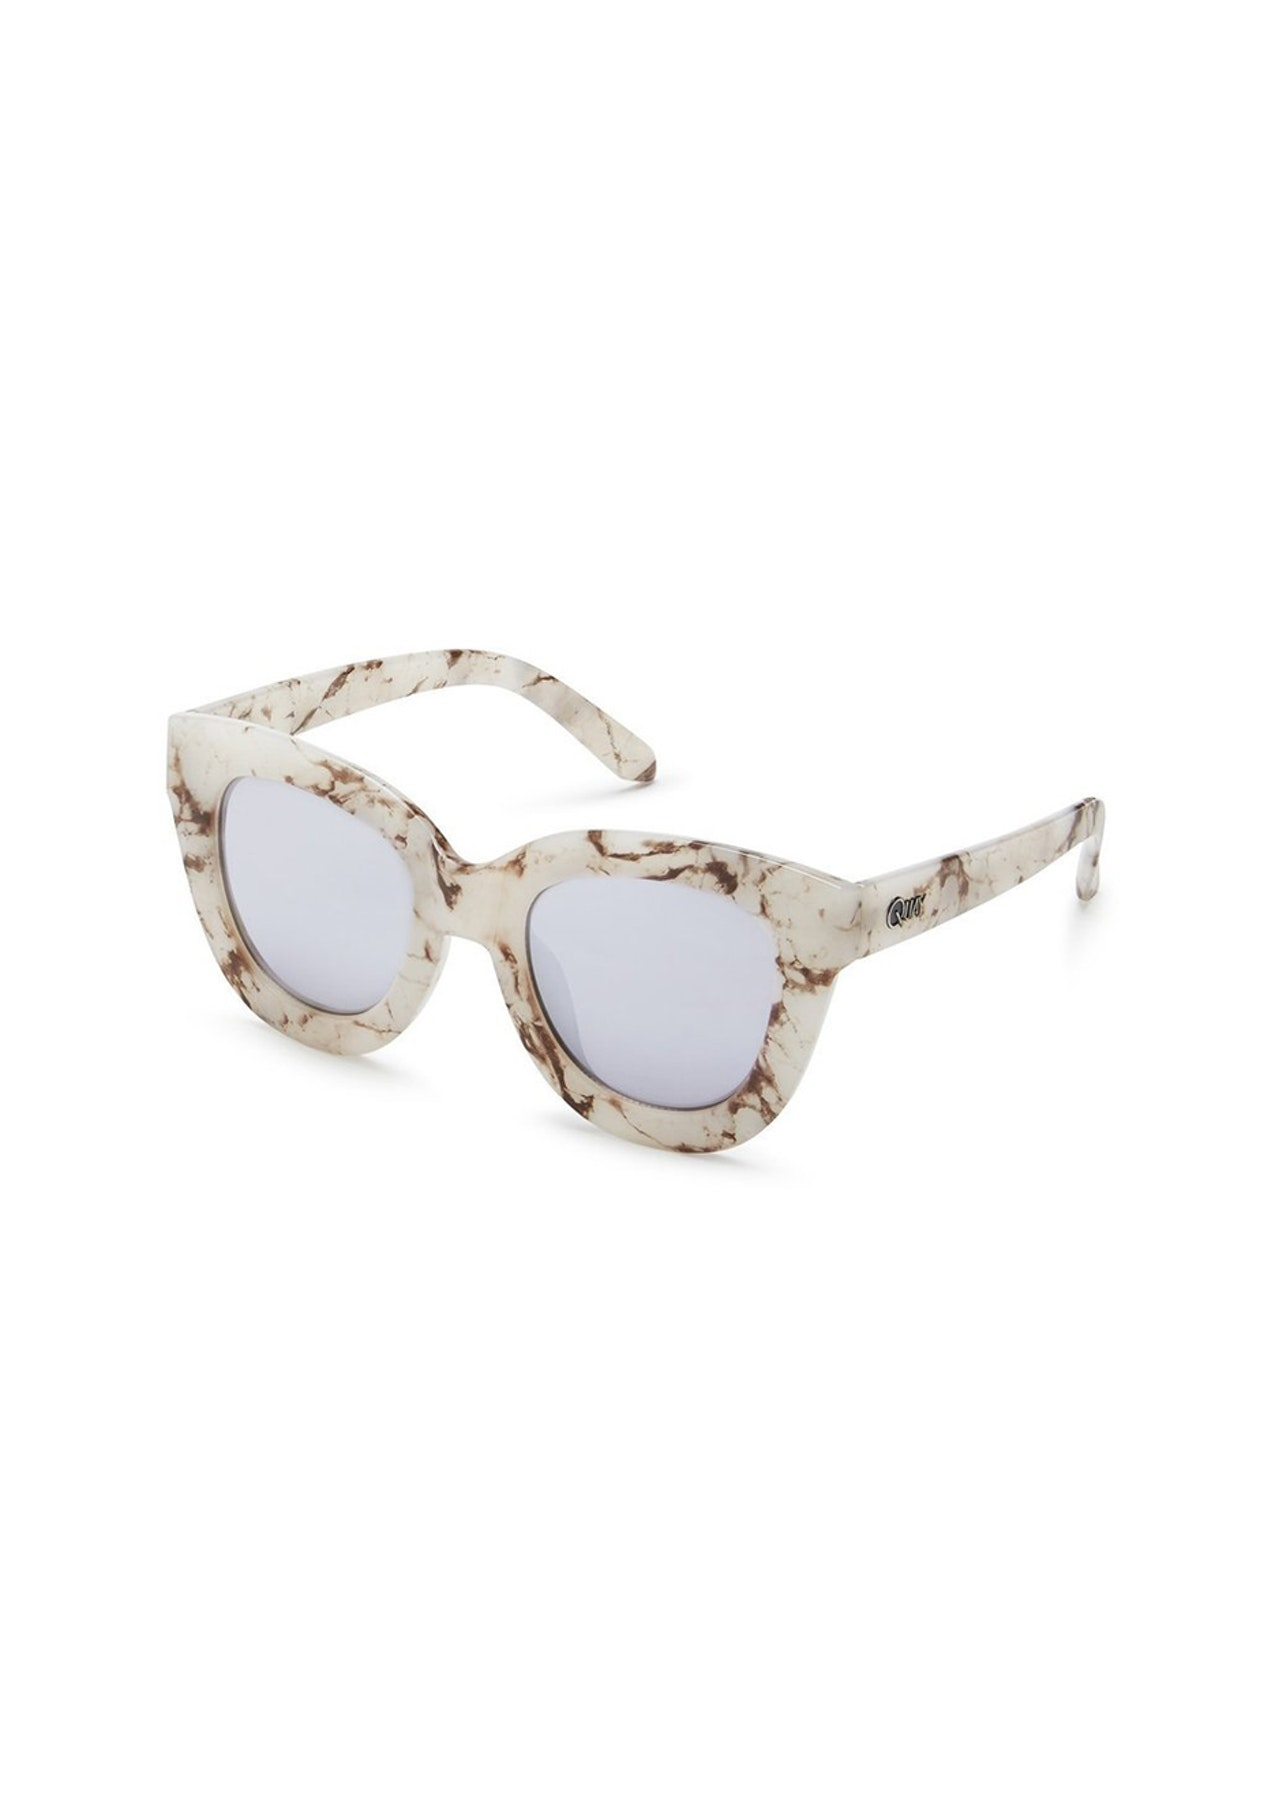 99f59ef2f92 Quay - Sugar And Spice - White Marble   Silver Mirror - Eyewear   Accessory  Reductions - Onceit